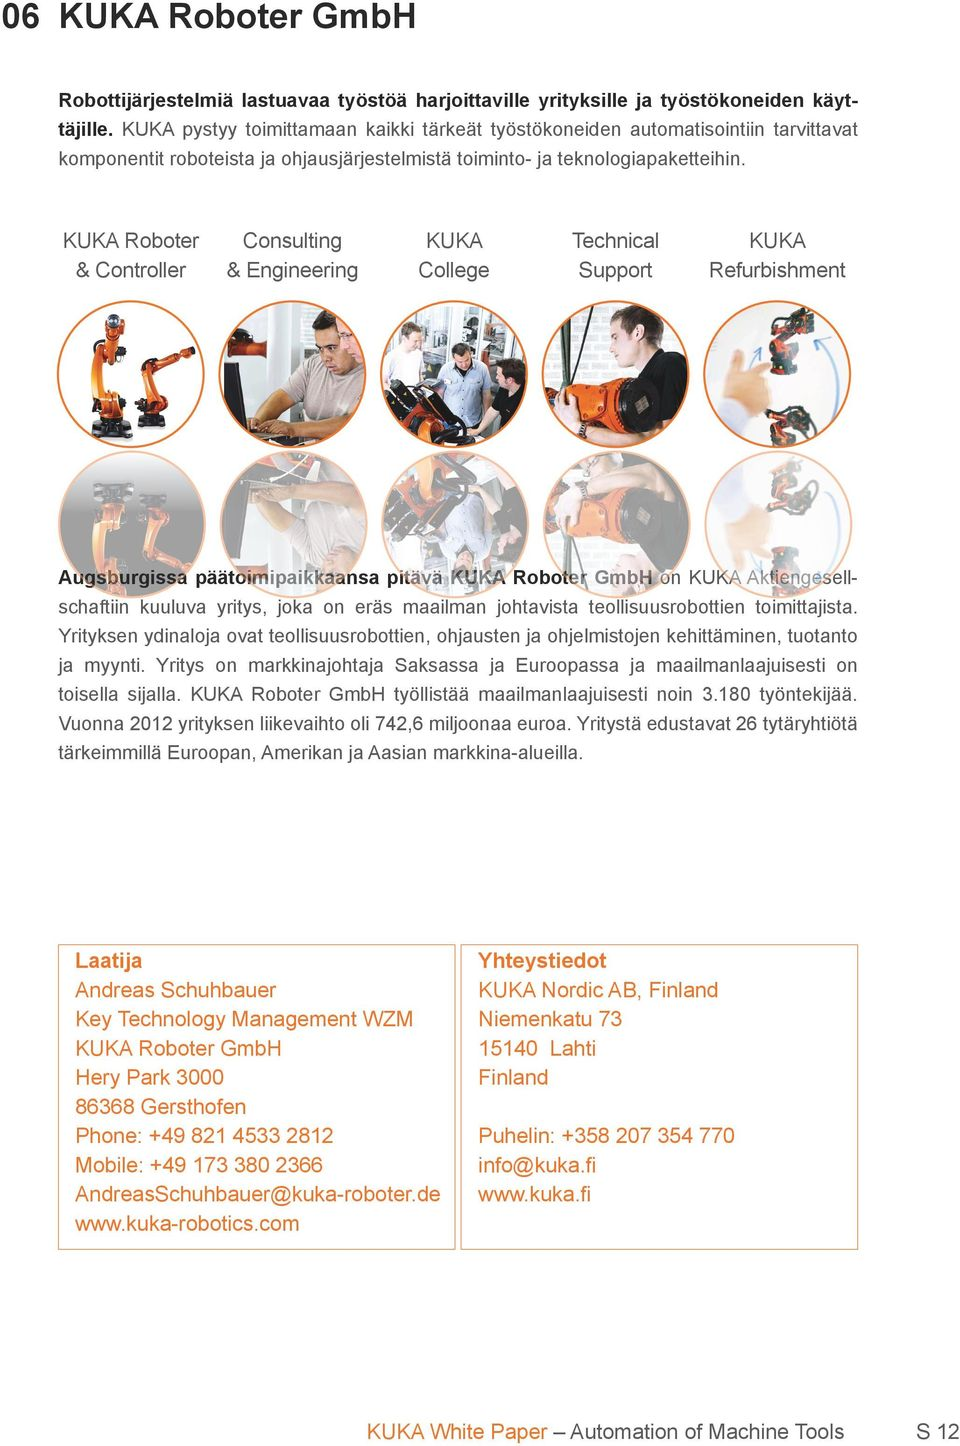 KUKA Roboter & Controller Consulting & Engineering KUKA College Technical Support KUKA Refurbishment Augsburgissa päätoimipaikkaansa pitävä KUKA Roboter GmbH on KUKA Aktiengesellschaftiin kuuluva